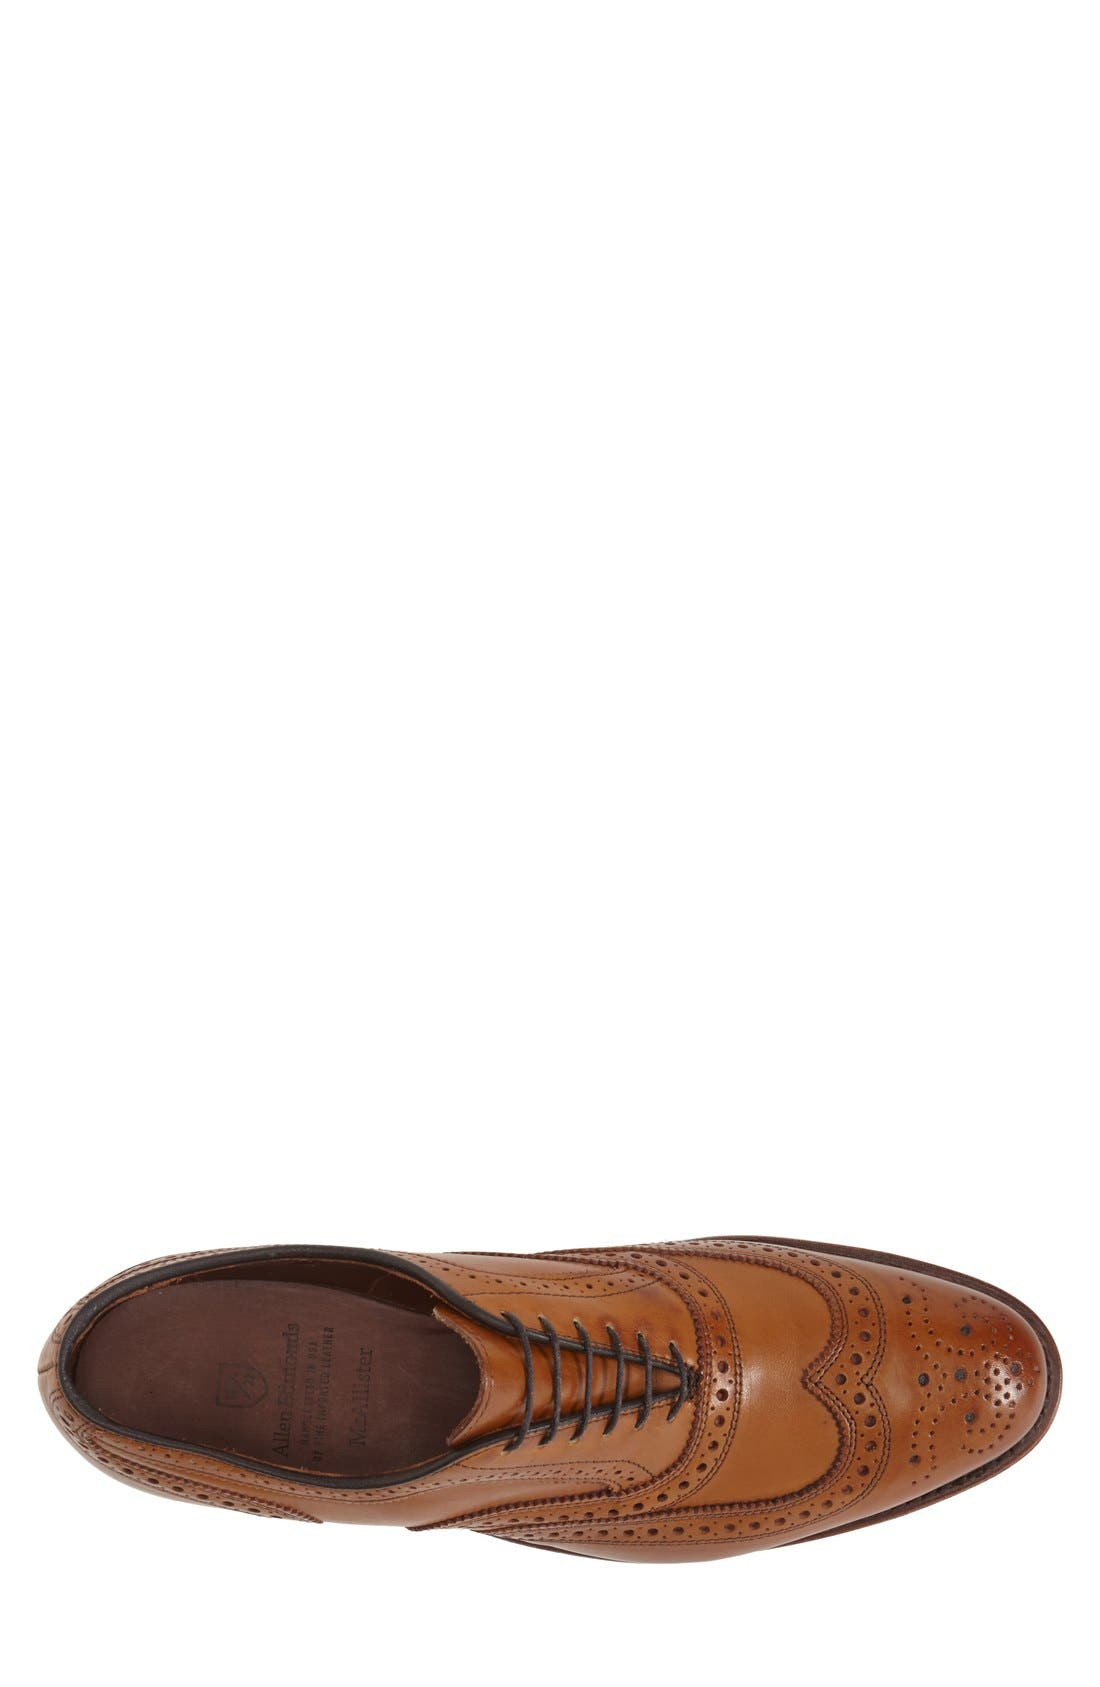 Alternate Image 3  - Allen Edmonds 'McAllister' Wingtip (Men)